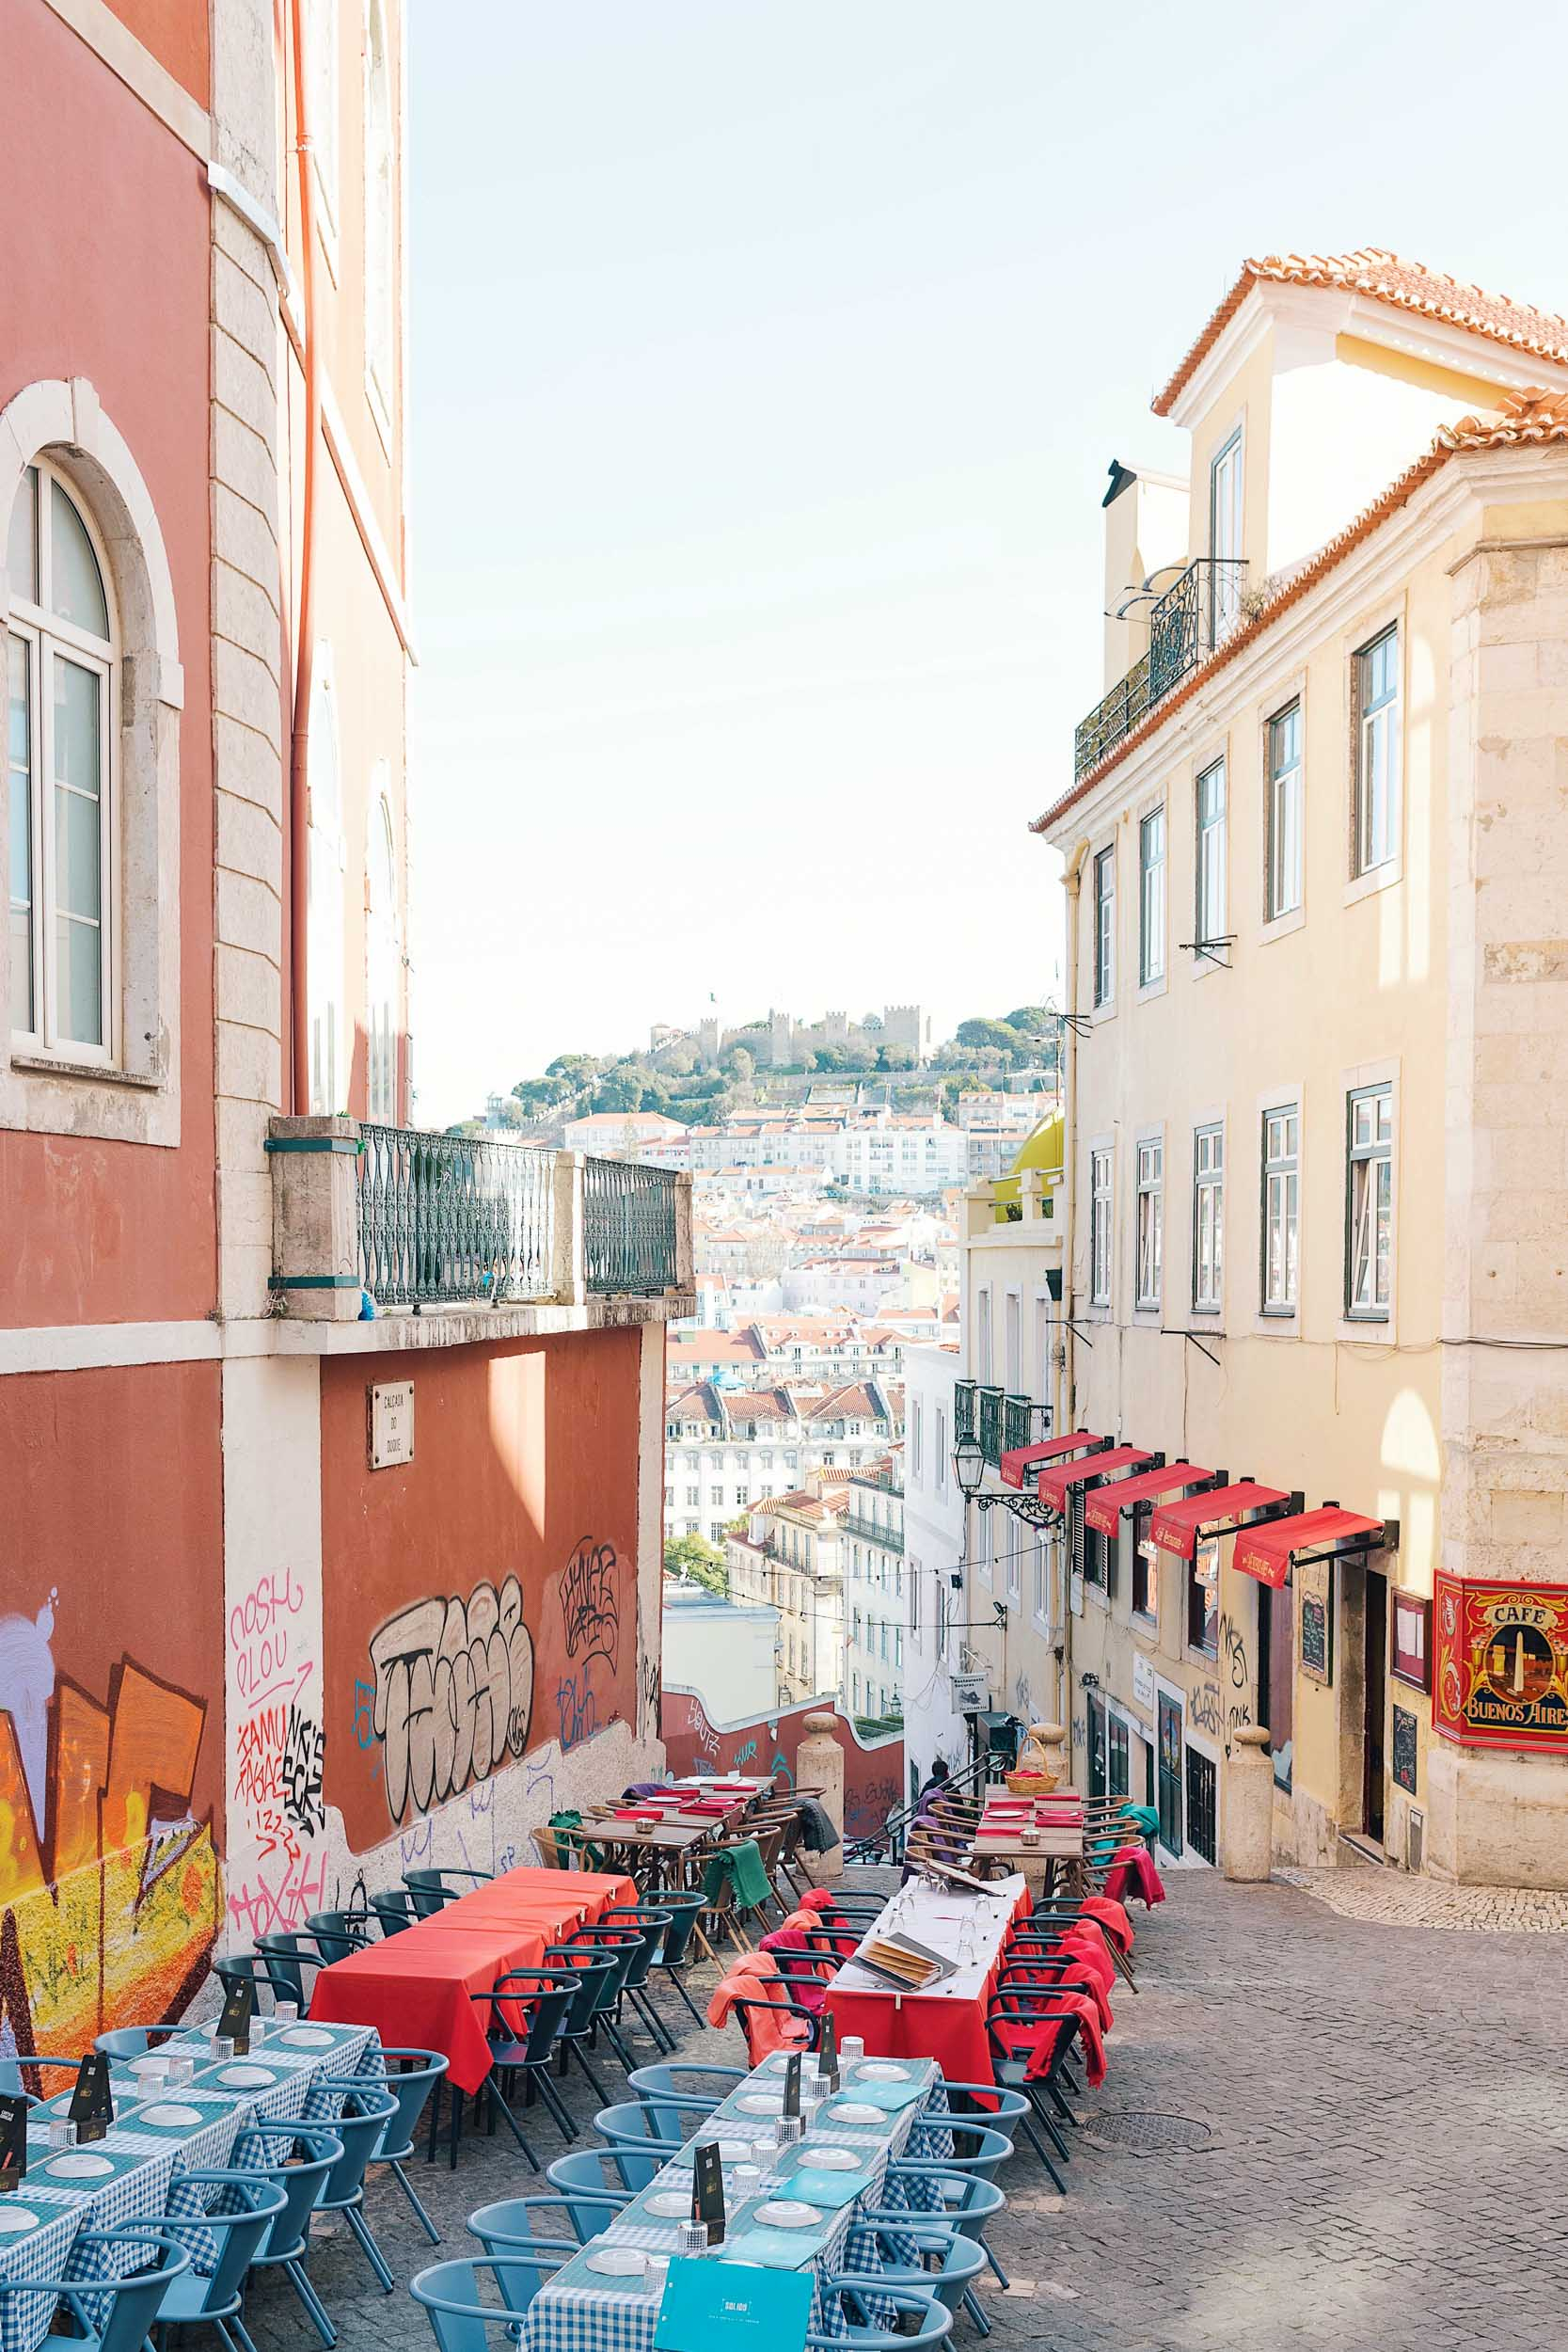 Any Portugal itinerary 7 days must include a visit to Lisbon, Portugal's capital